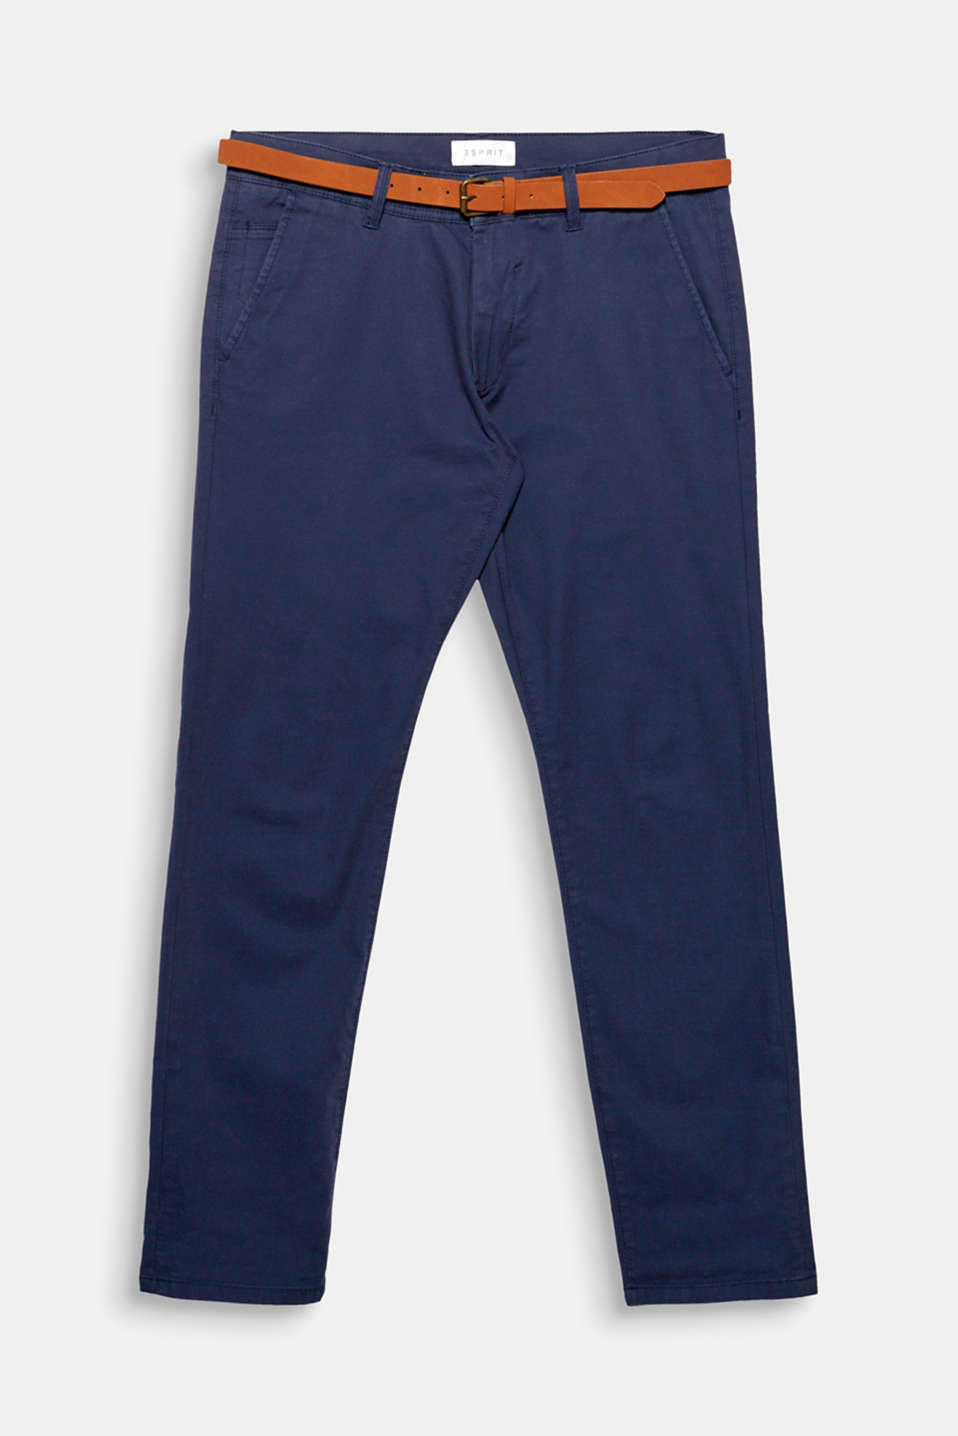 A fashion classic that should not be missing from any wardrobe: slim-fitting cotton stretch trousers with a belt.